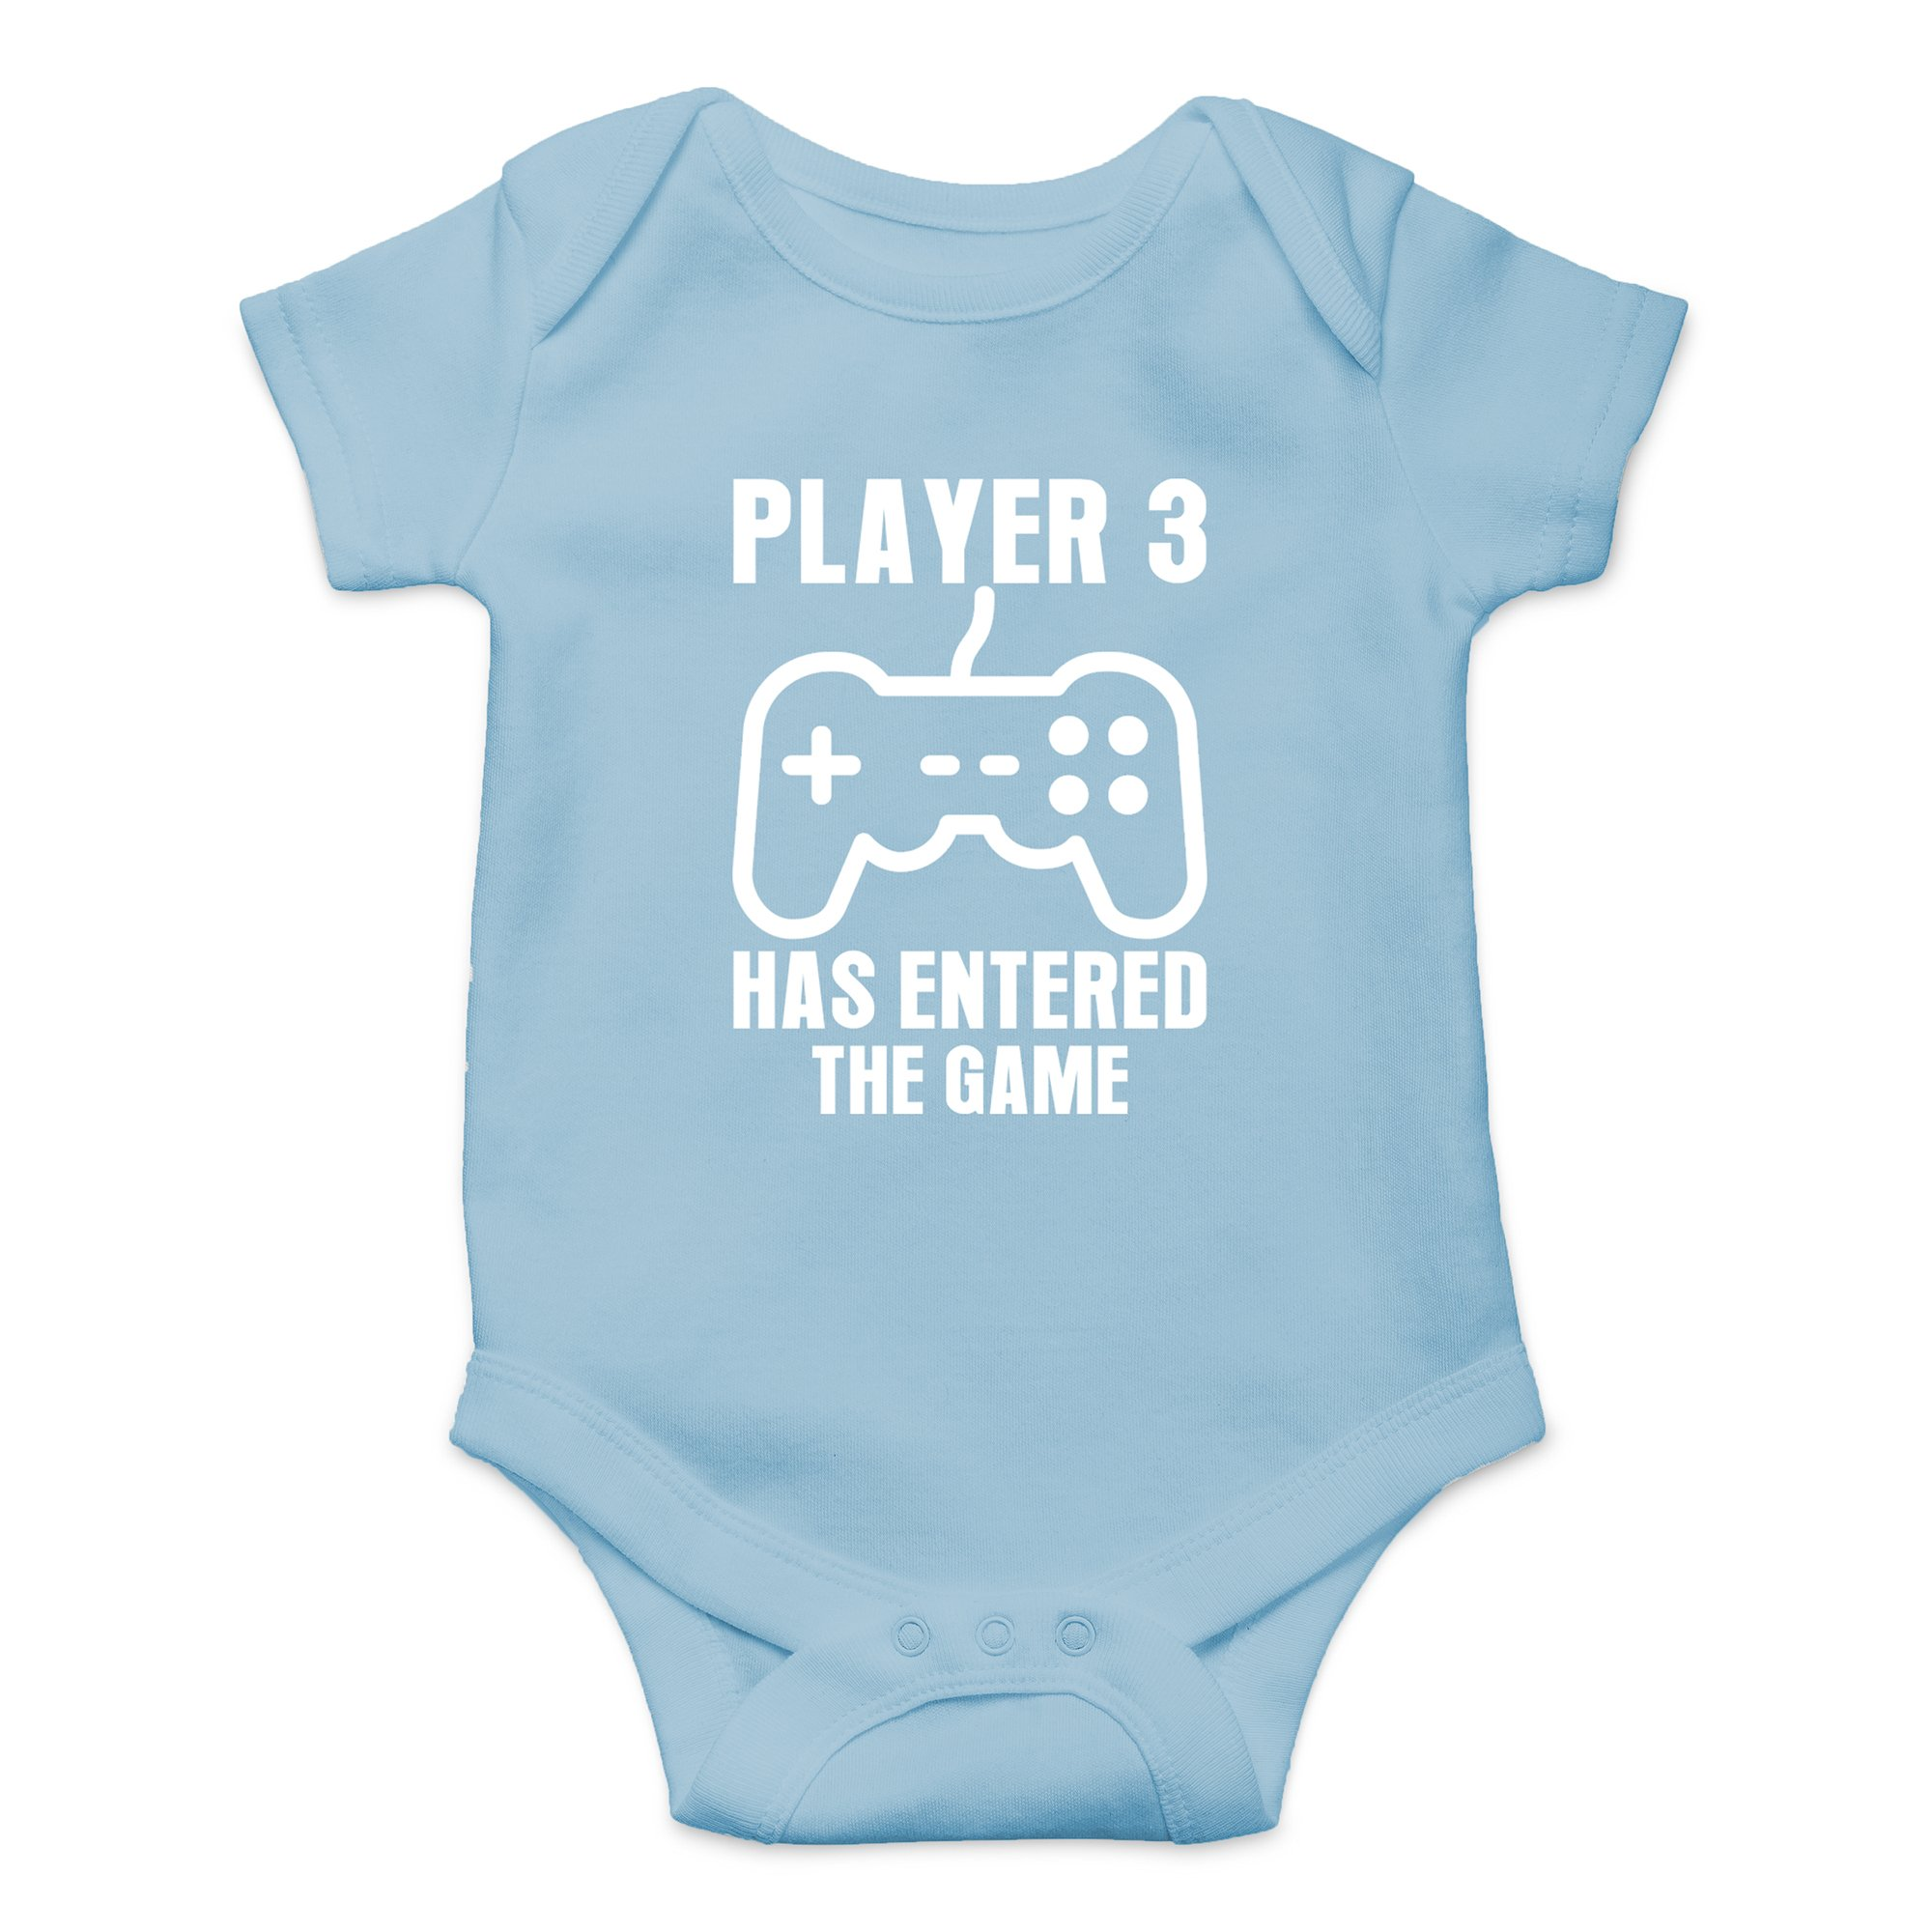 Crazy Bros Tees Player 3 Has Entered The Game - Gamer Baby Funny Cute Novelty Infant One-Piece Baby Bodysuit (6 Months, Light Blue)